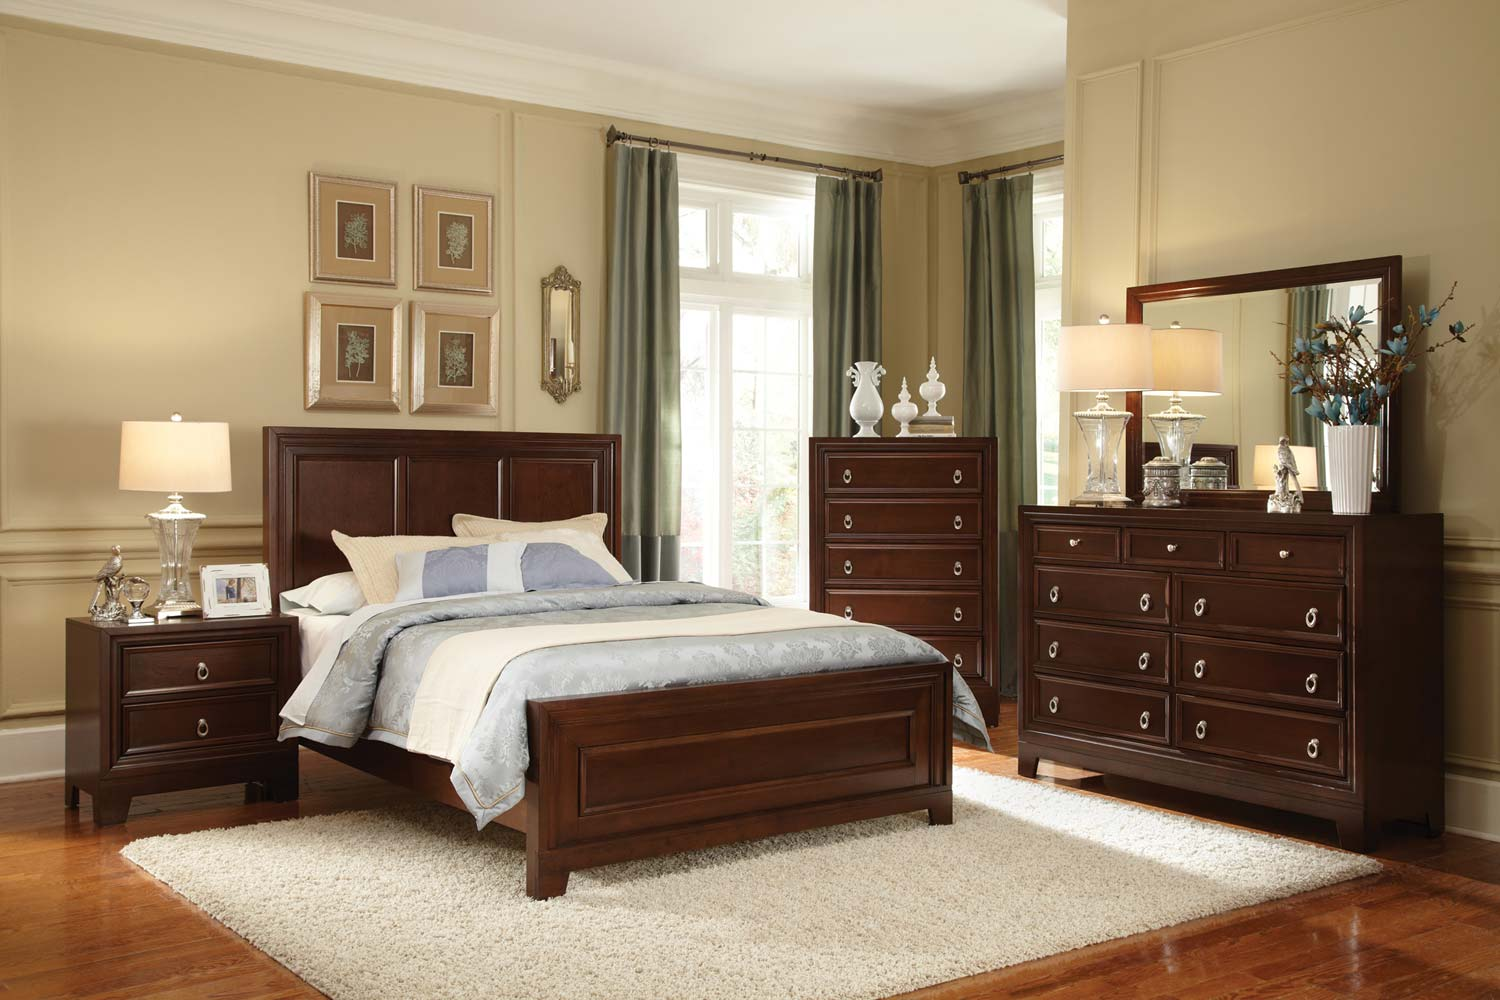 Coaster Nortin Low Profile Panel Bedroom Set - Dark Cherry